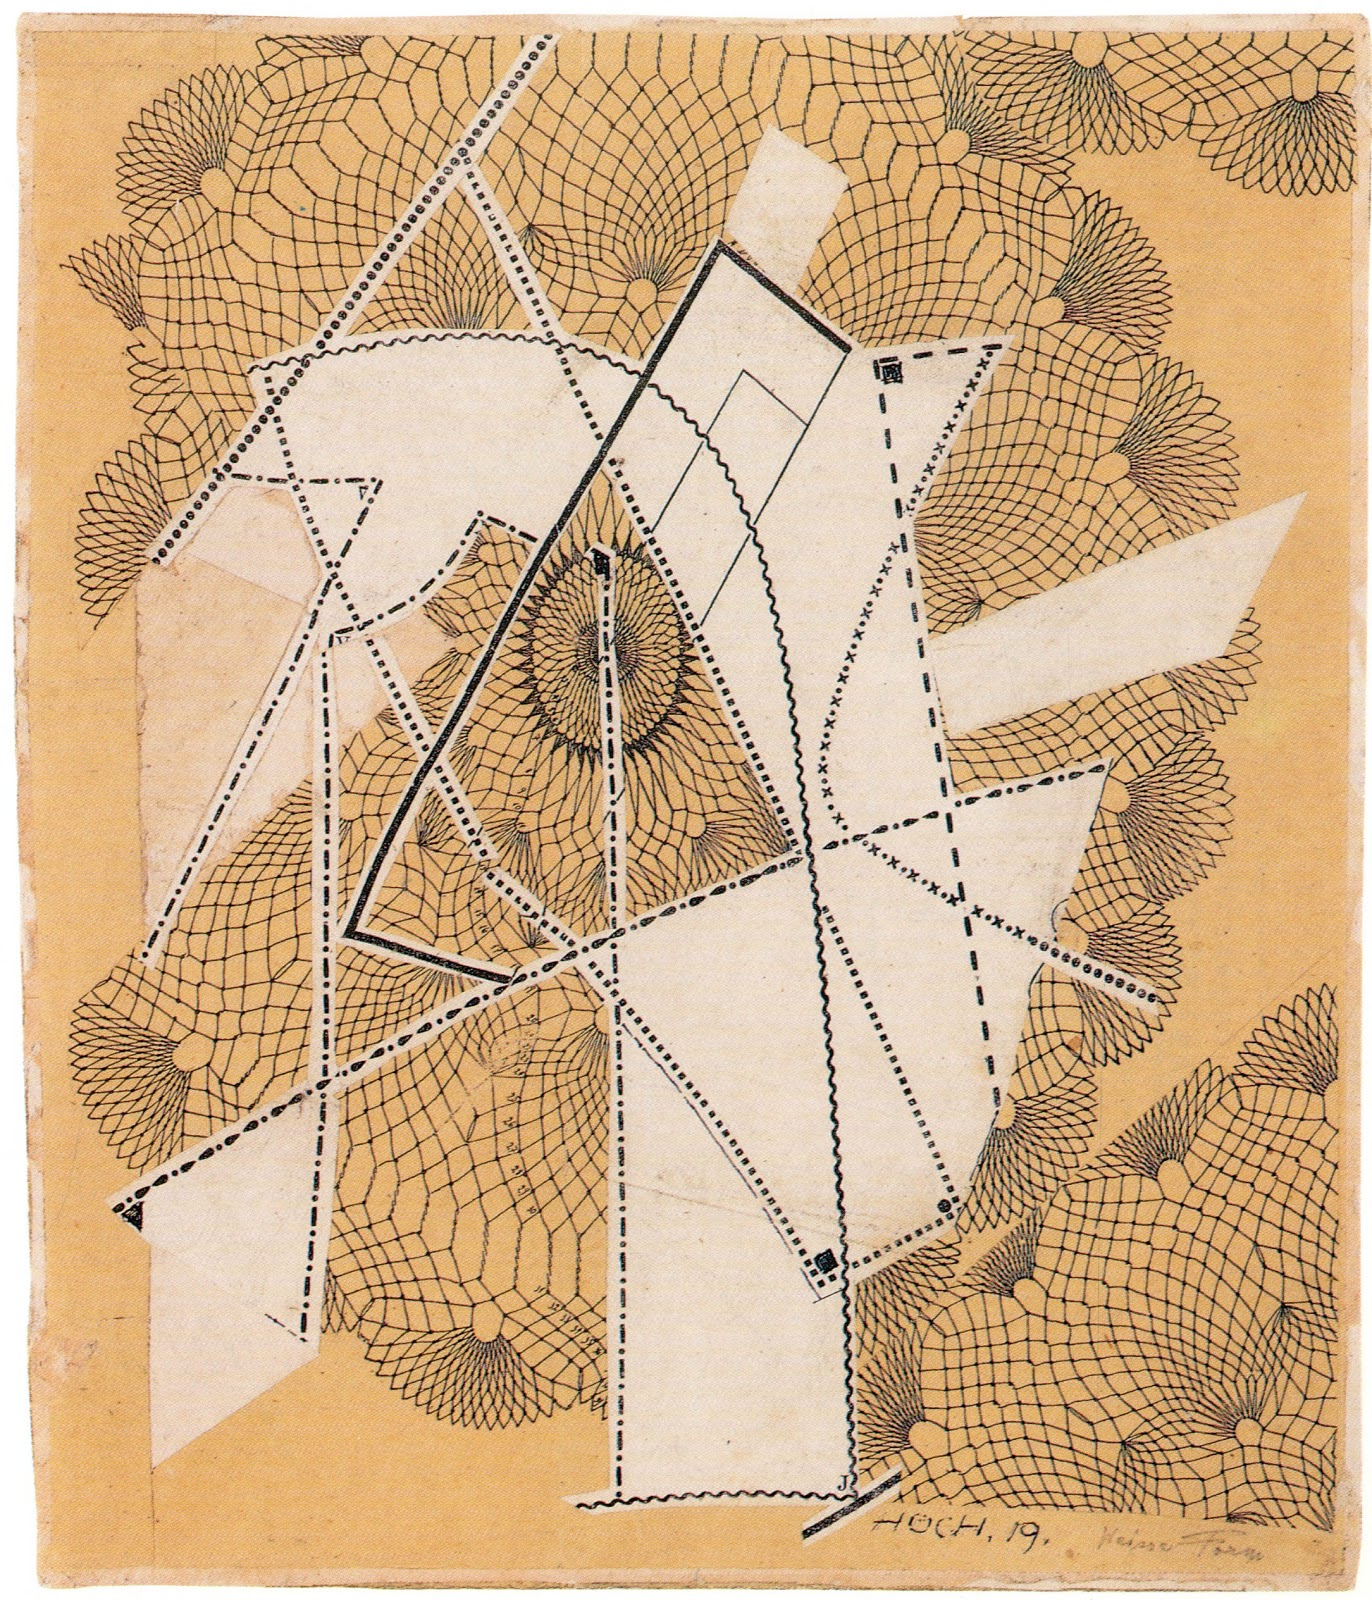 Cut with a kitchen knife hannah hoch - Cut With A Kitchen Knife Hannah Hoch 30